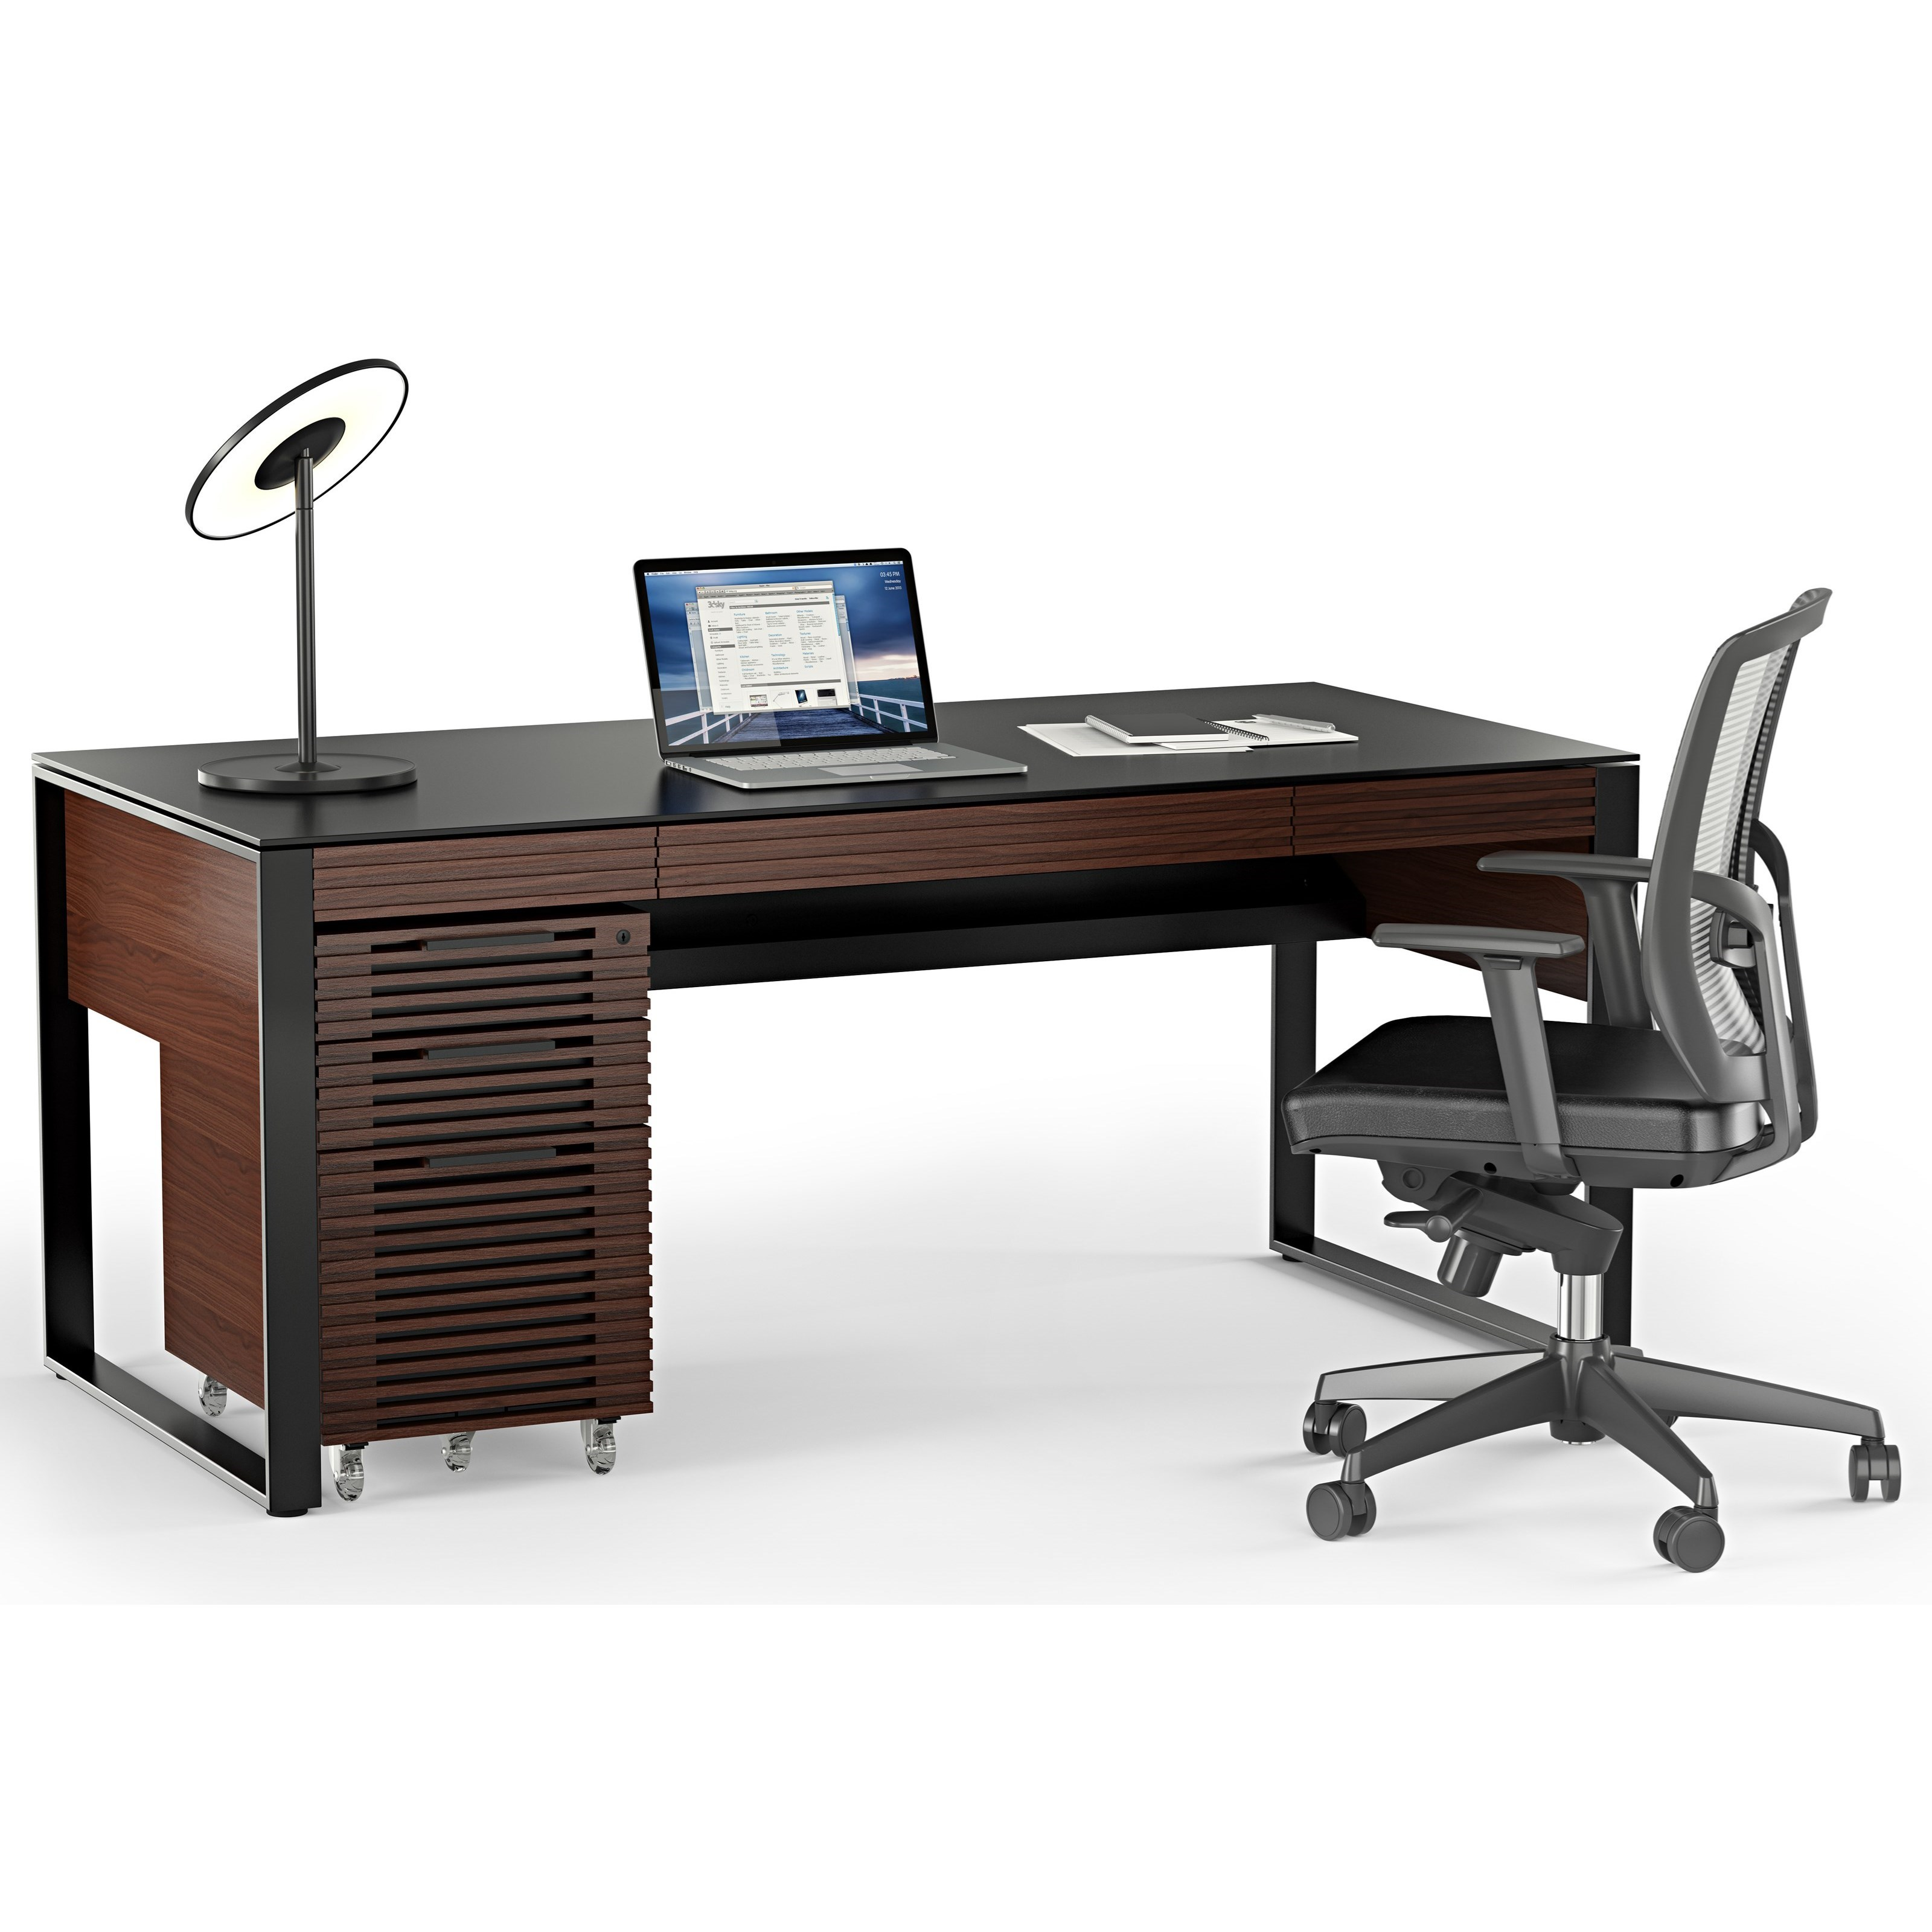 Corridor Desk with File Cabinet by BDI at Upper Room Home Furnishings